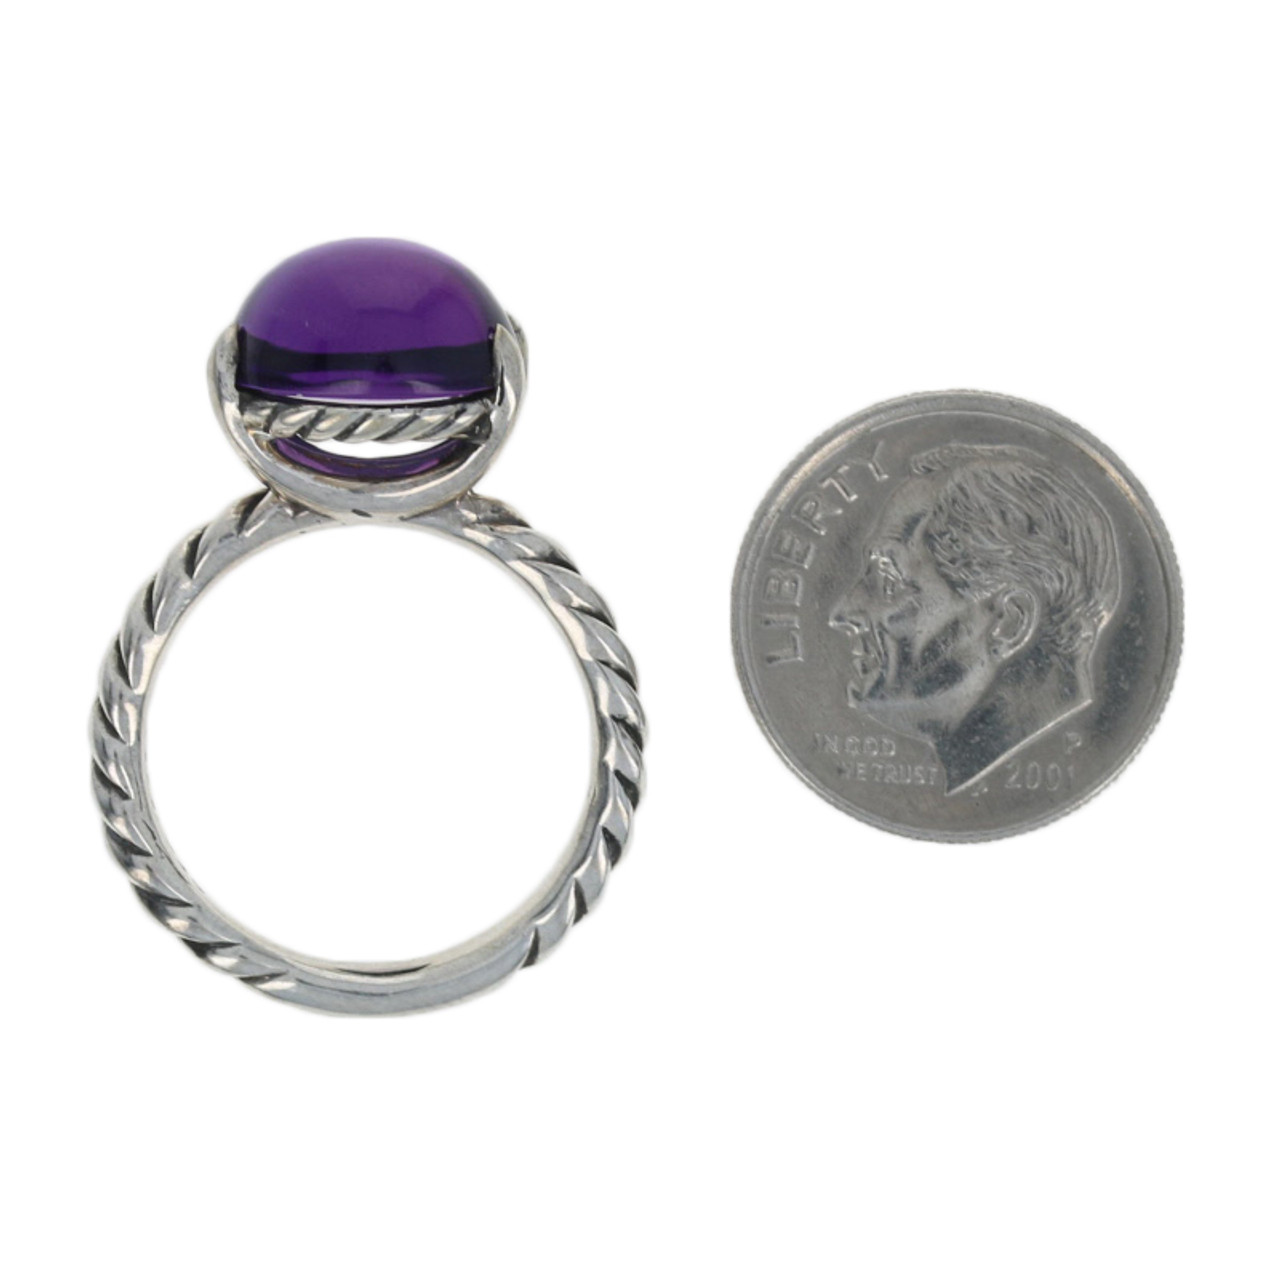 Cabochon Amethyst 925 Sterling Silver Victorian Swirl Bypass Ring SZ 7